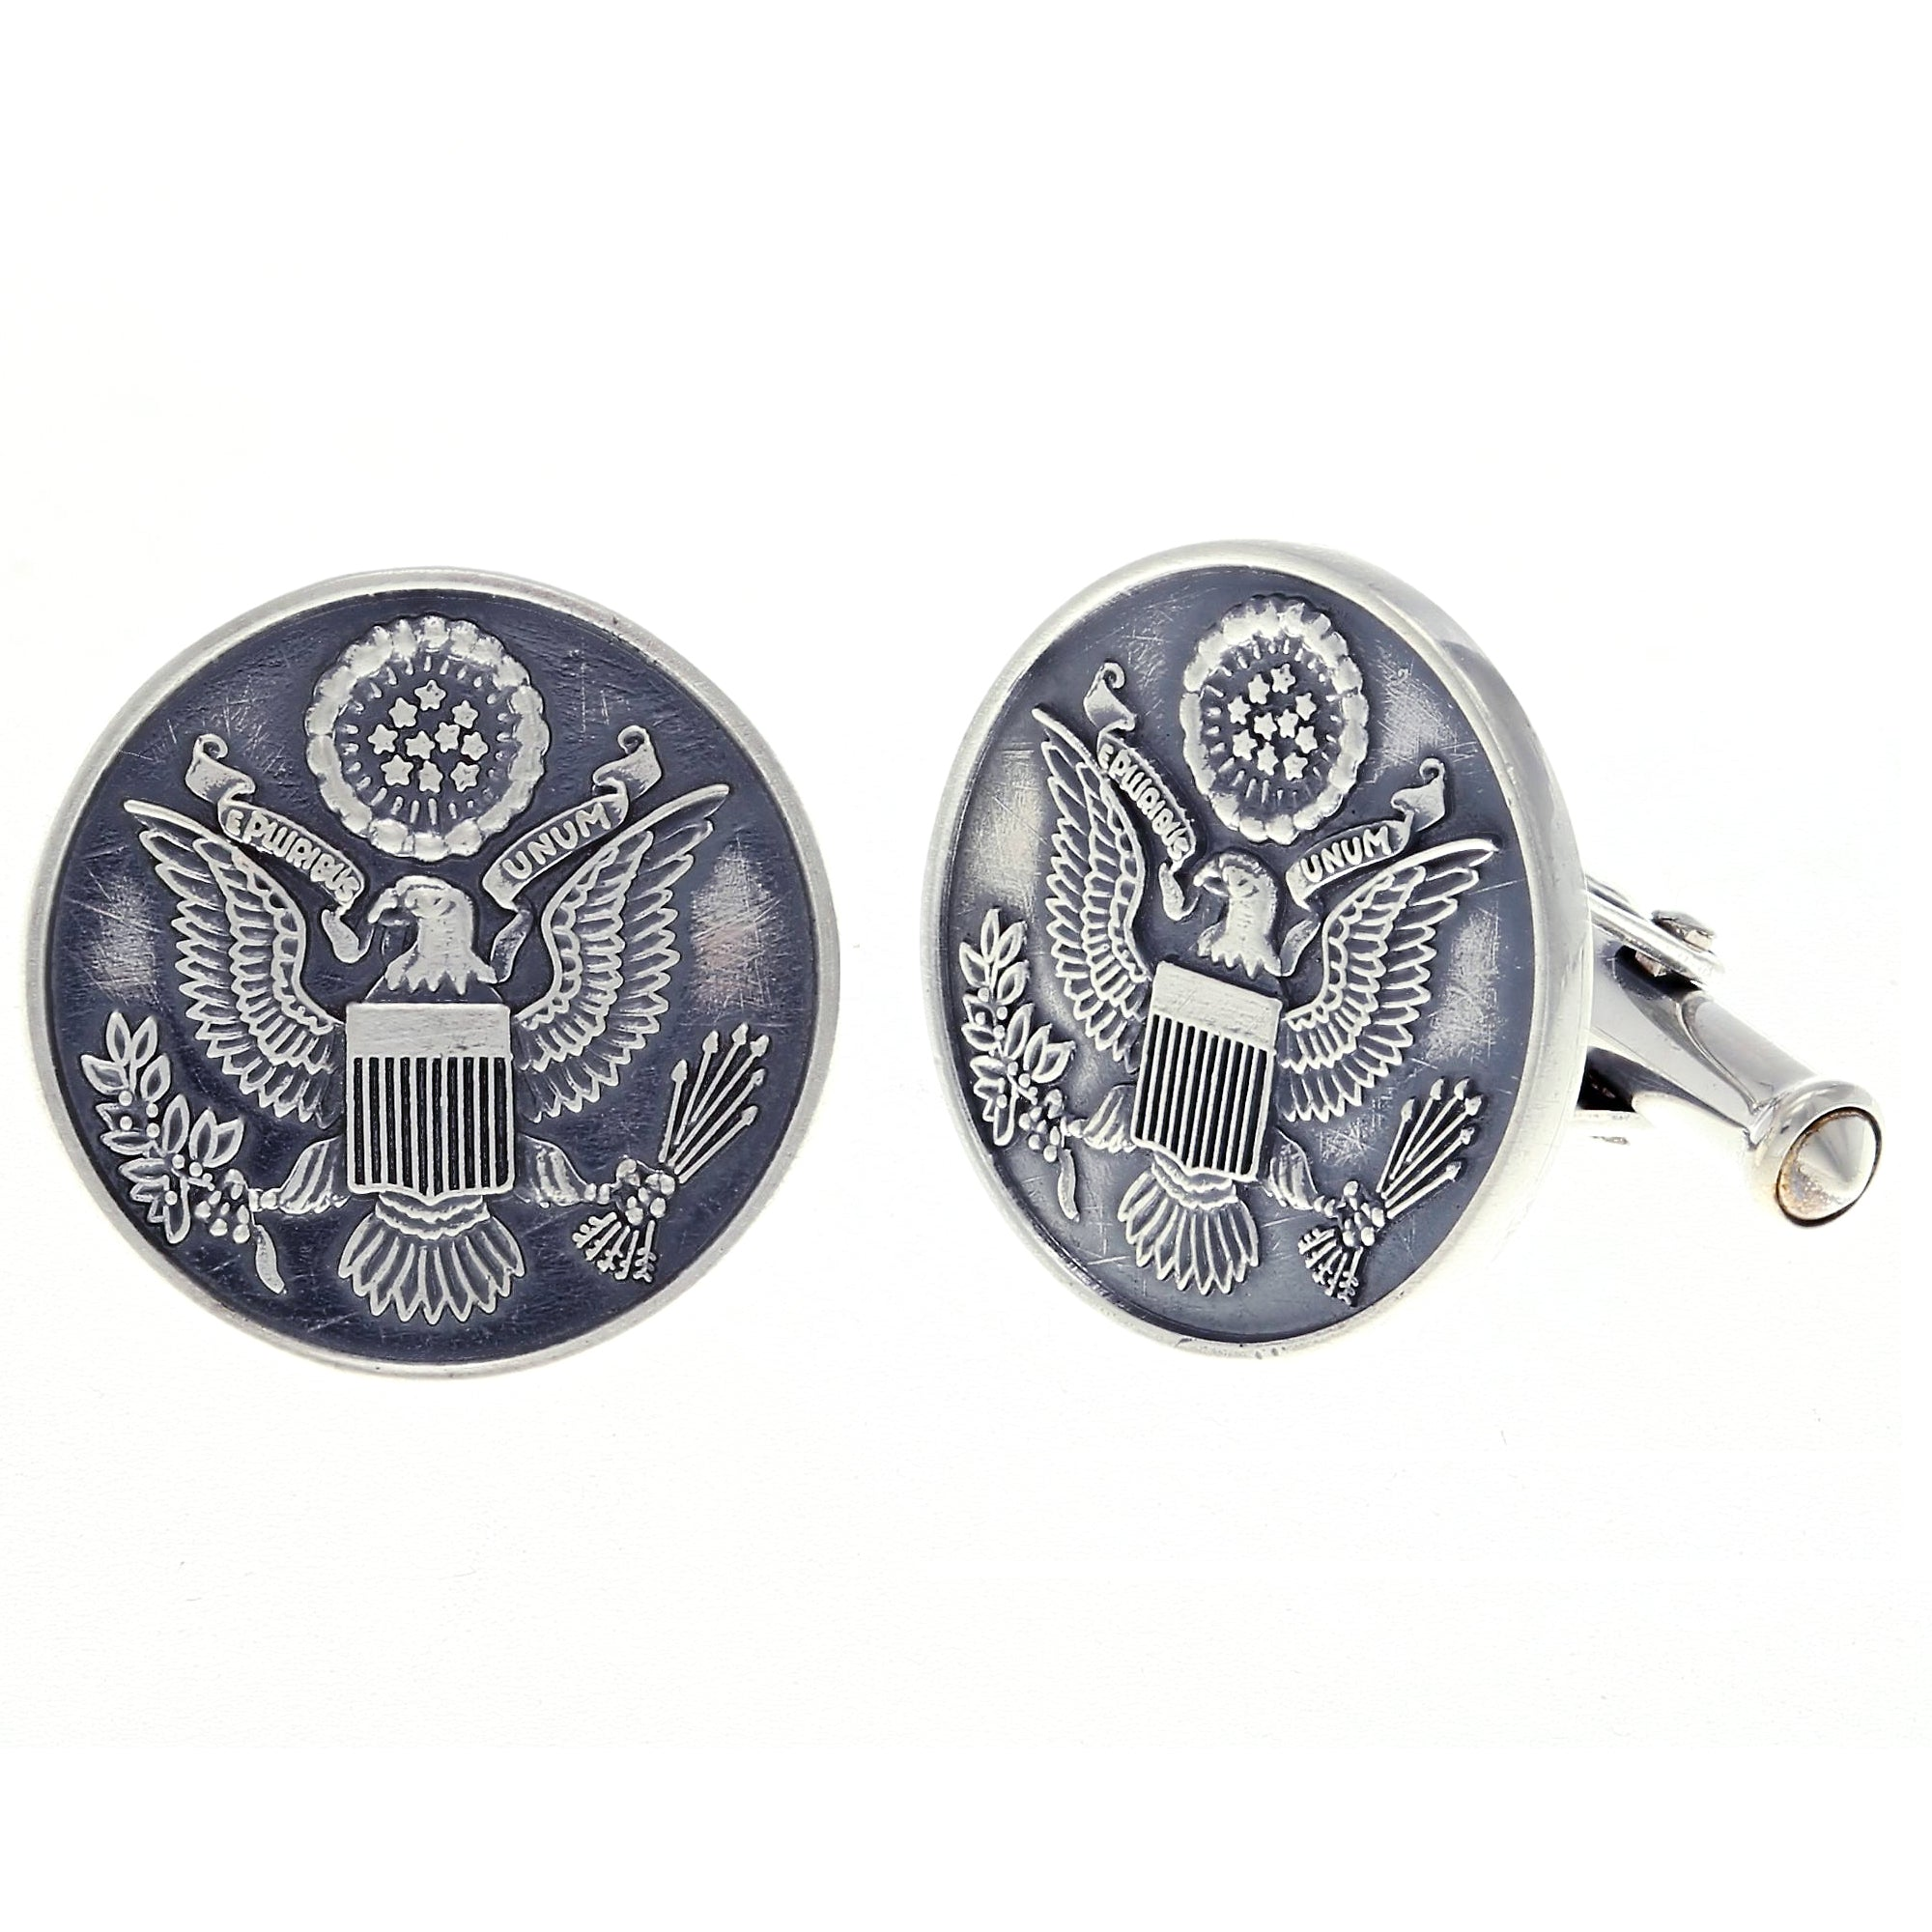 Cuff Links 1910 Presidential Seal